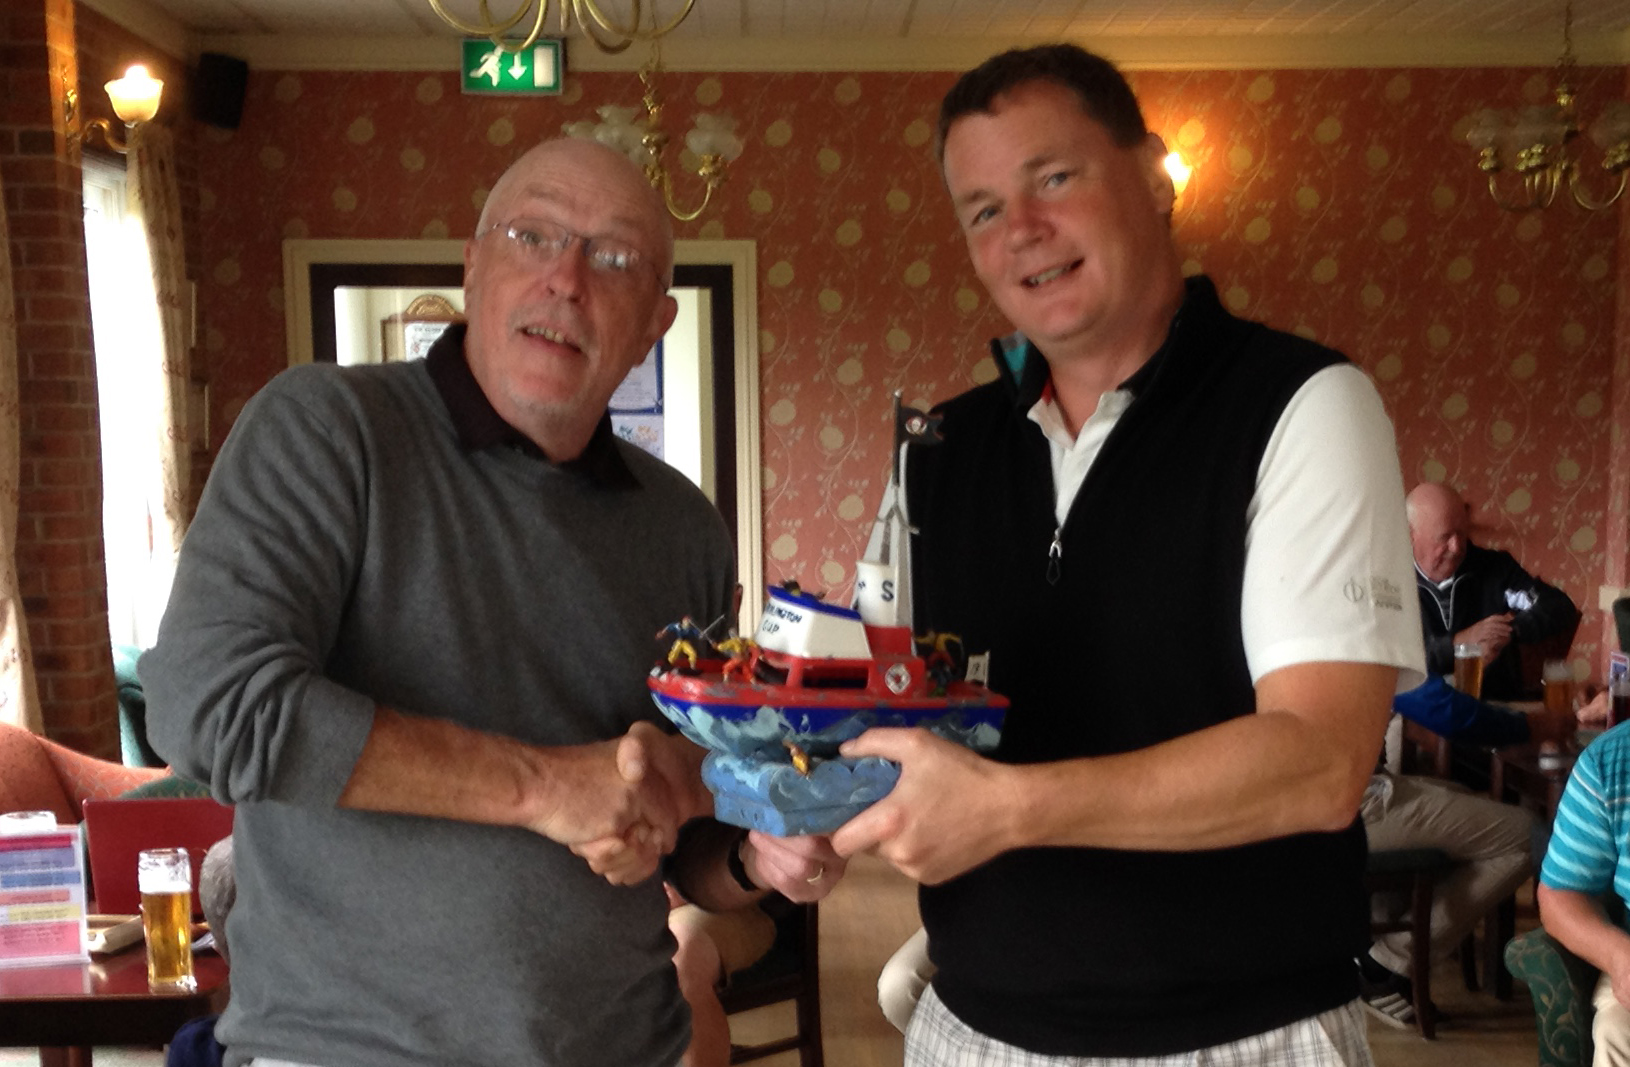 2016 Bridlington Admiral's Cup – Dearsley Floats the Boat !